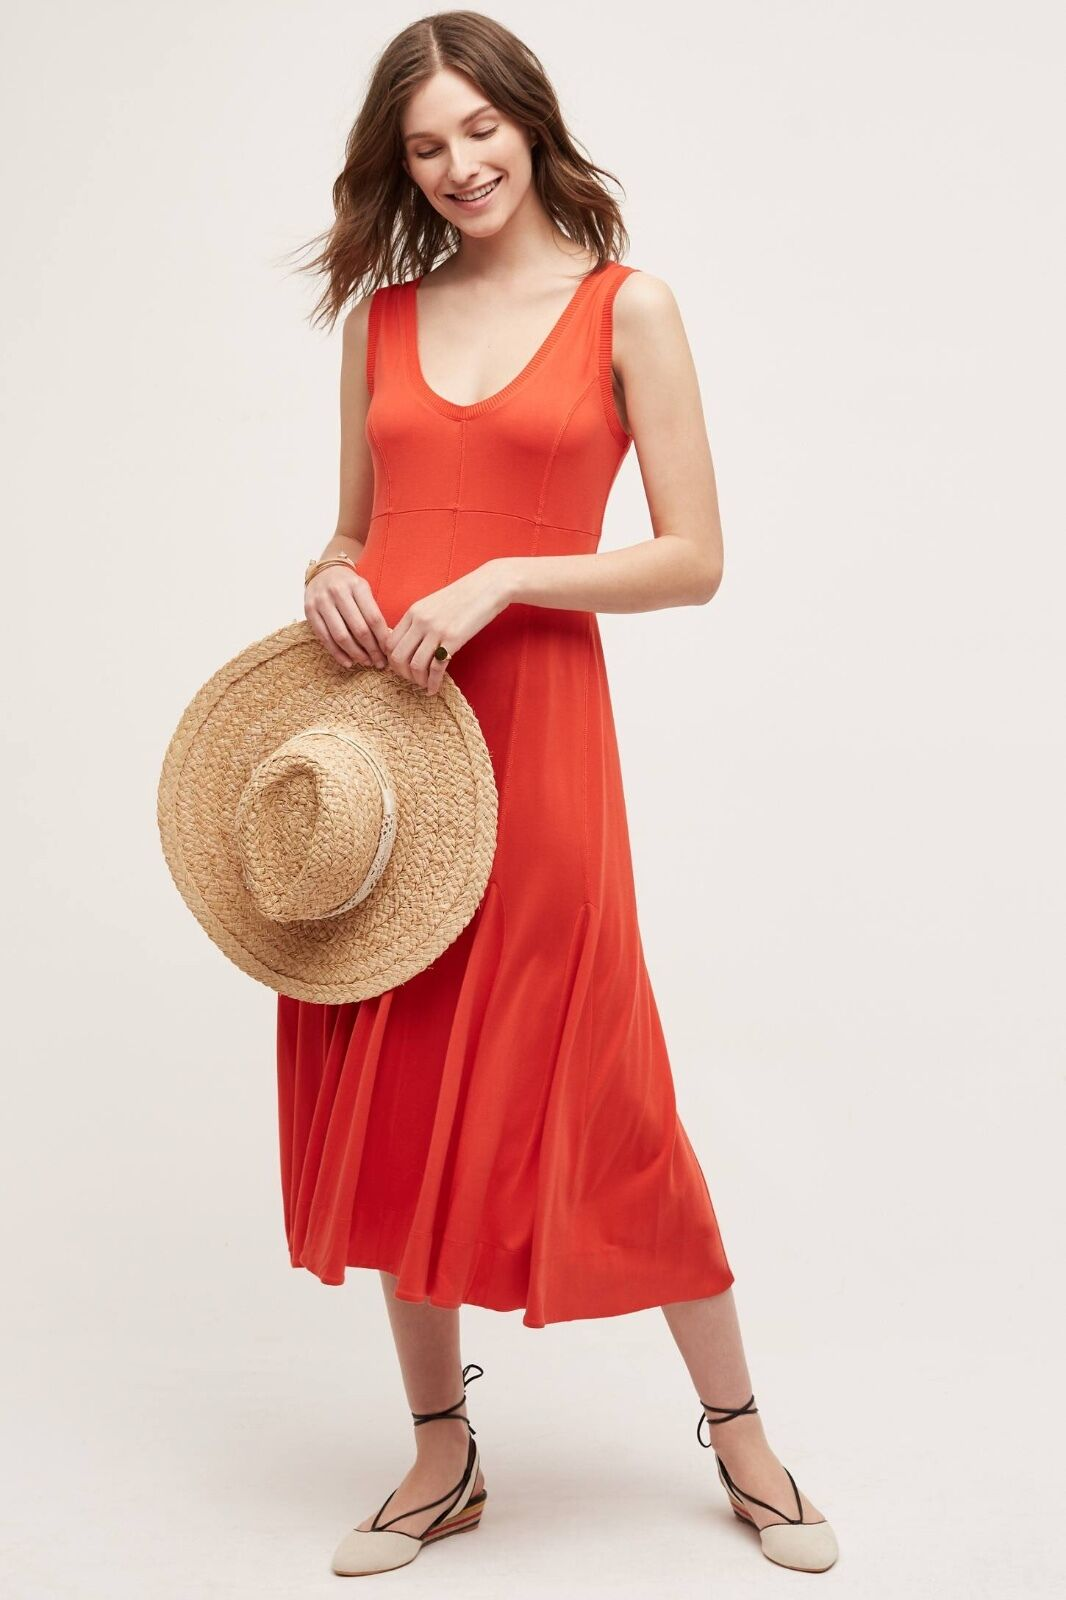 NWT NEW  Anthropologie Abroad Dress Red  orange Maeve Size M S  Medium Small